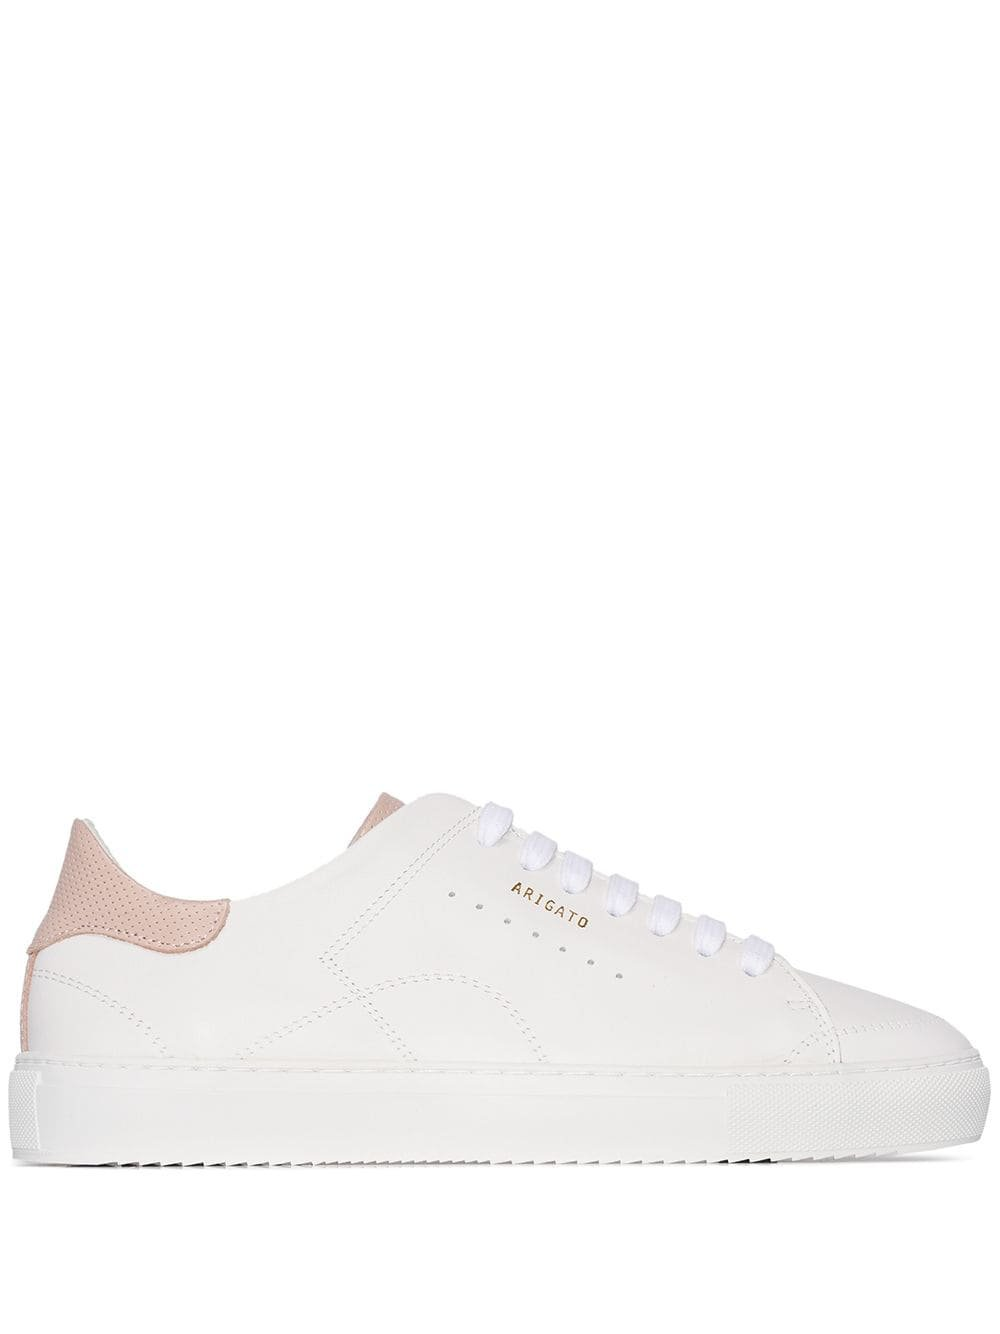 Axel Arigato Clean 90 low top sneakers $210 - Buy AW19 Online - Fast Global Delivery, Price